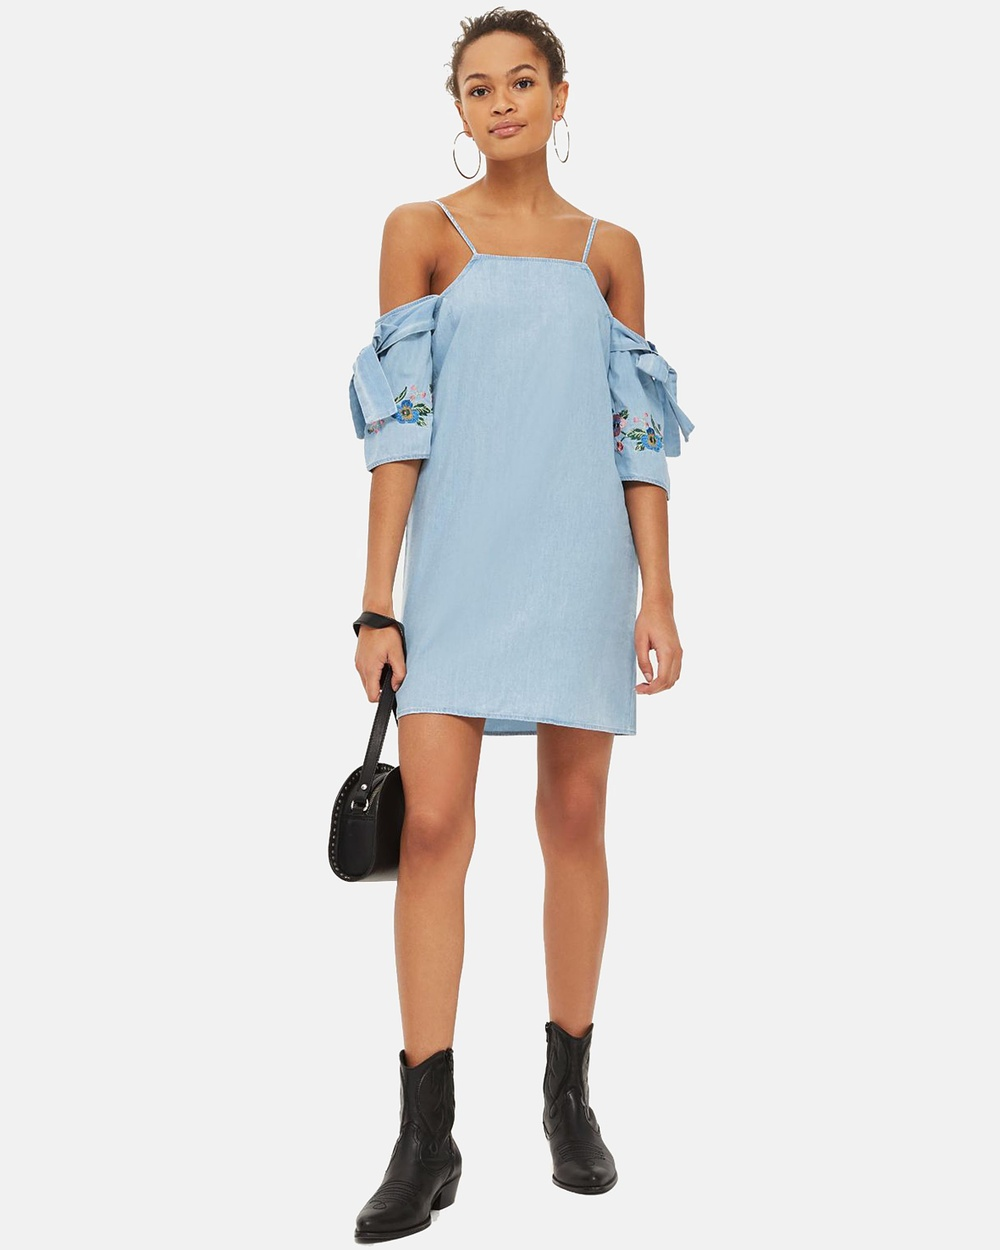 TOPSHOP MOTO Embroidered Sleeve Shift Dress Dresses Bleach MOTO Embroidered Sleeve Shift Dress